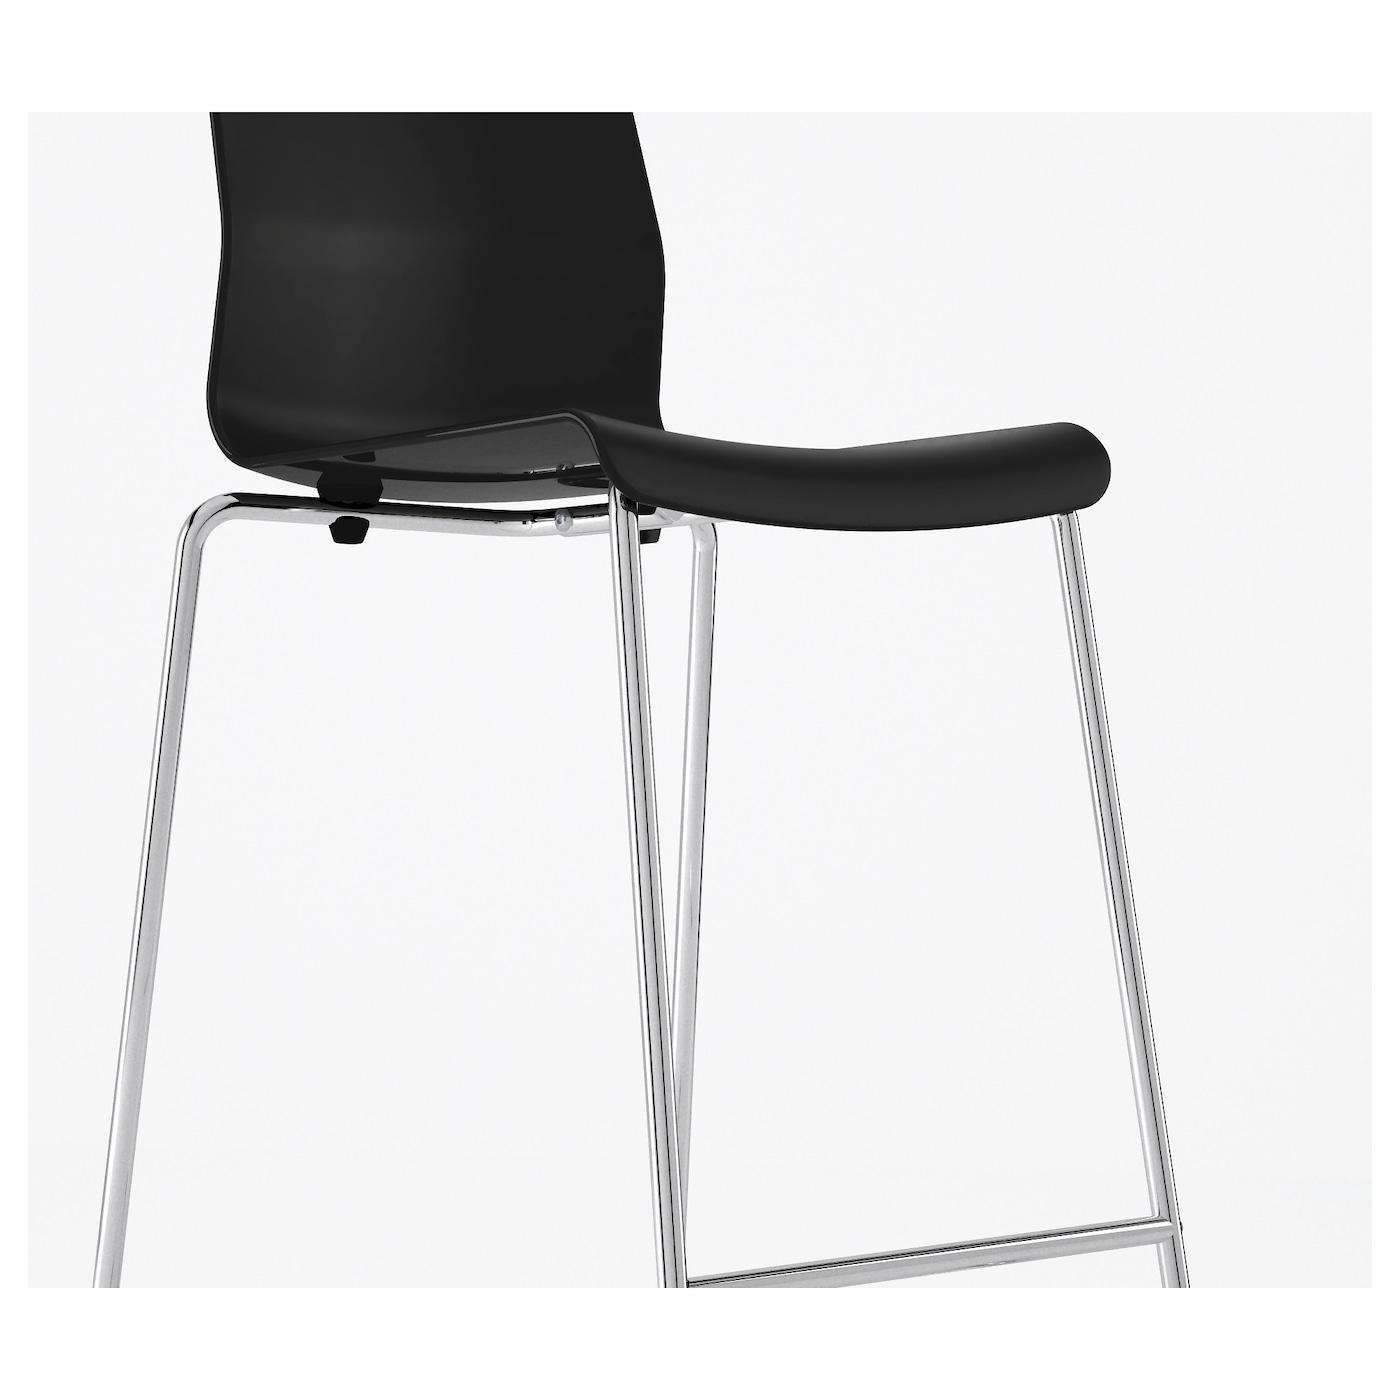 IKEA GLENN bar stool A special surface treatment makes the seat extra scratch resistant.